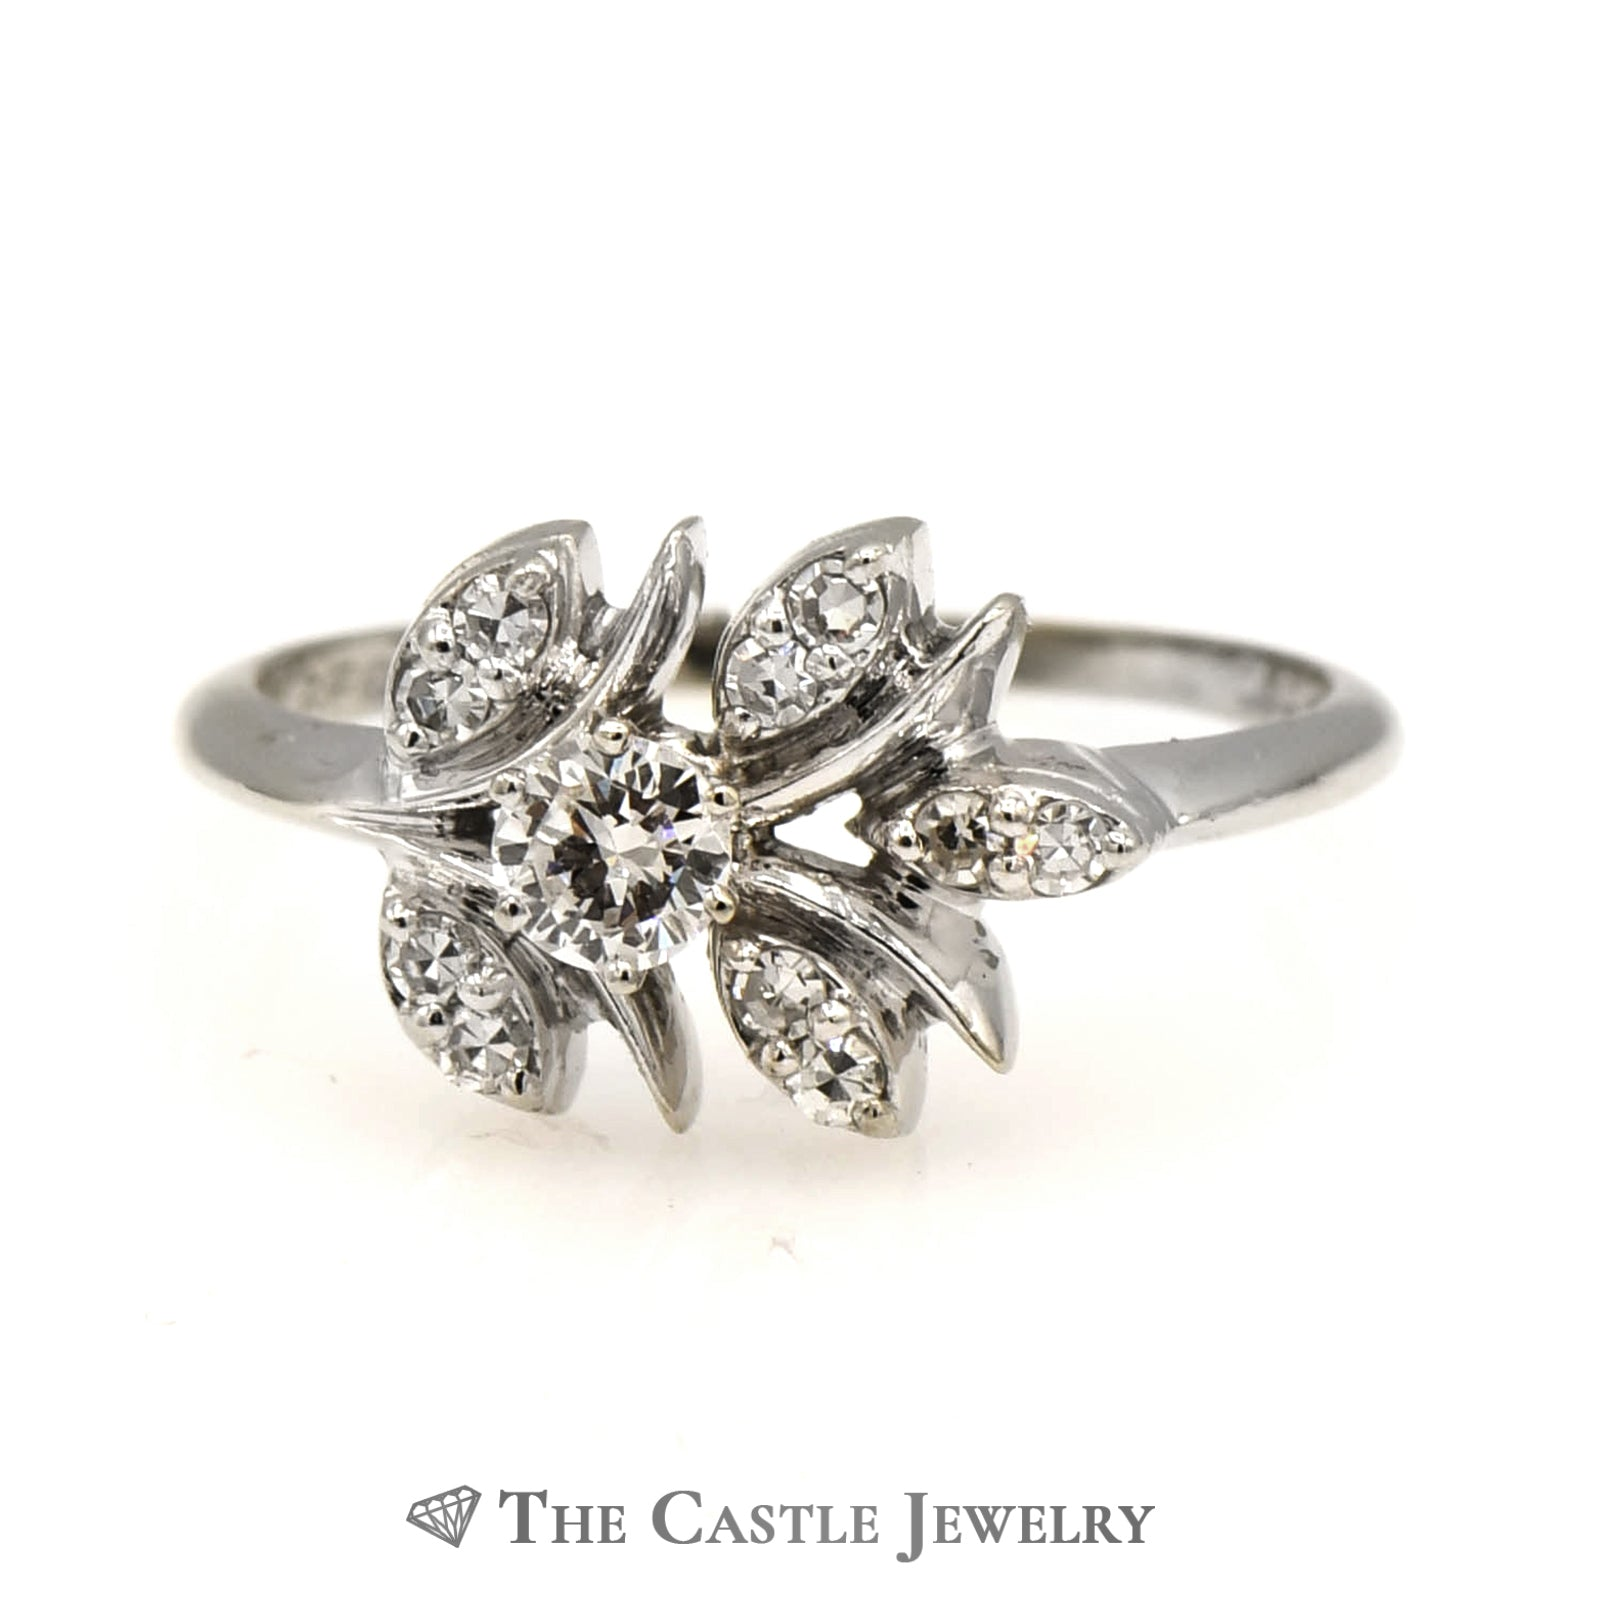 Vintage Leaf Design Ring with Full & Single Cut Diamonds